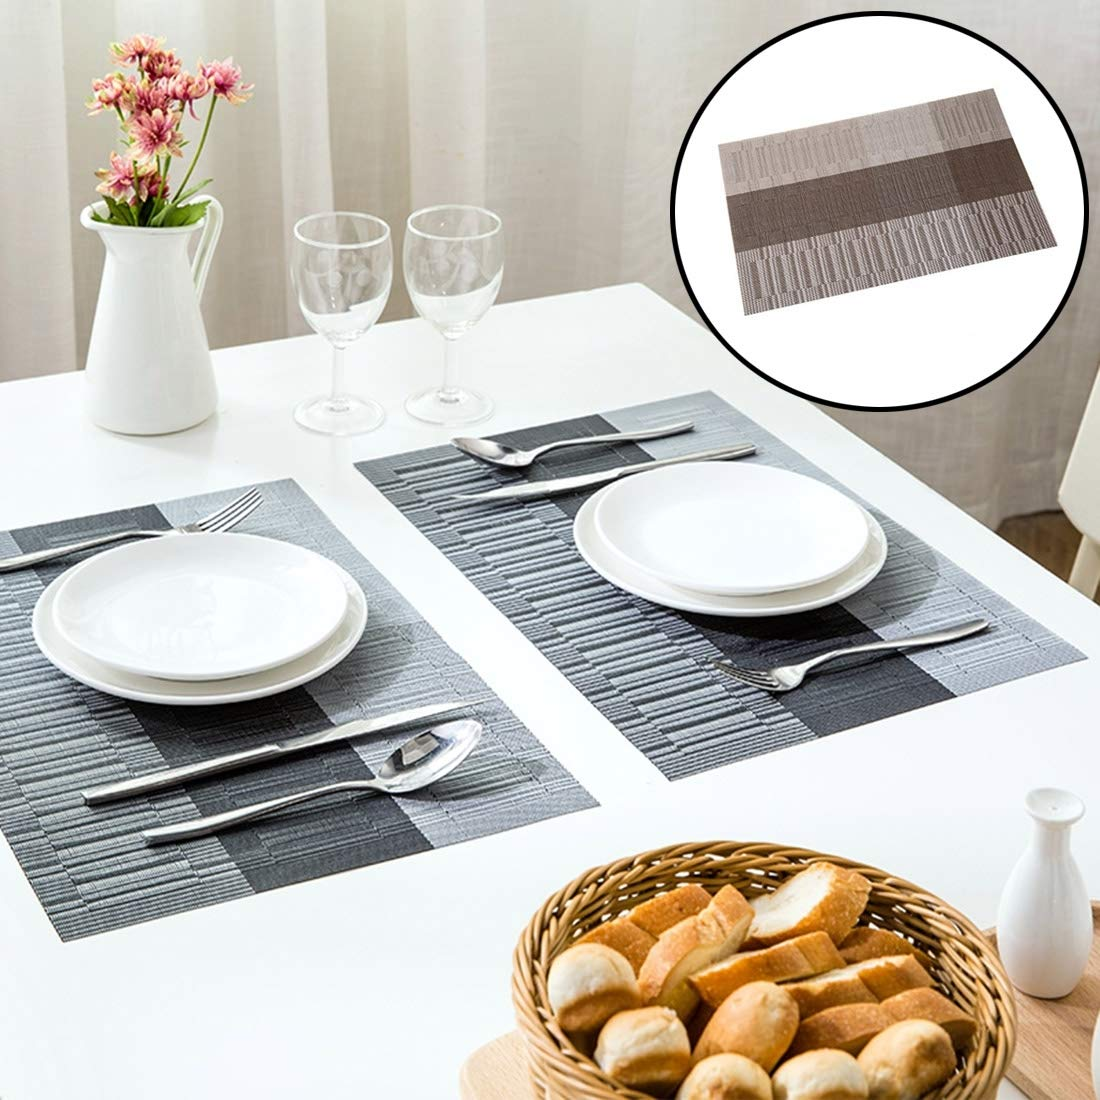 WXQ-XQ Sizing: 43.530cm, 5 PCS Childlike Knitting Style Raincoat Anti-Skid Insulation Dining Table Mat (SKU : Hc1145g) by WXQ-XQ